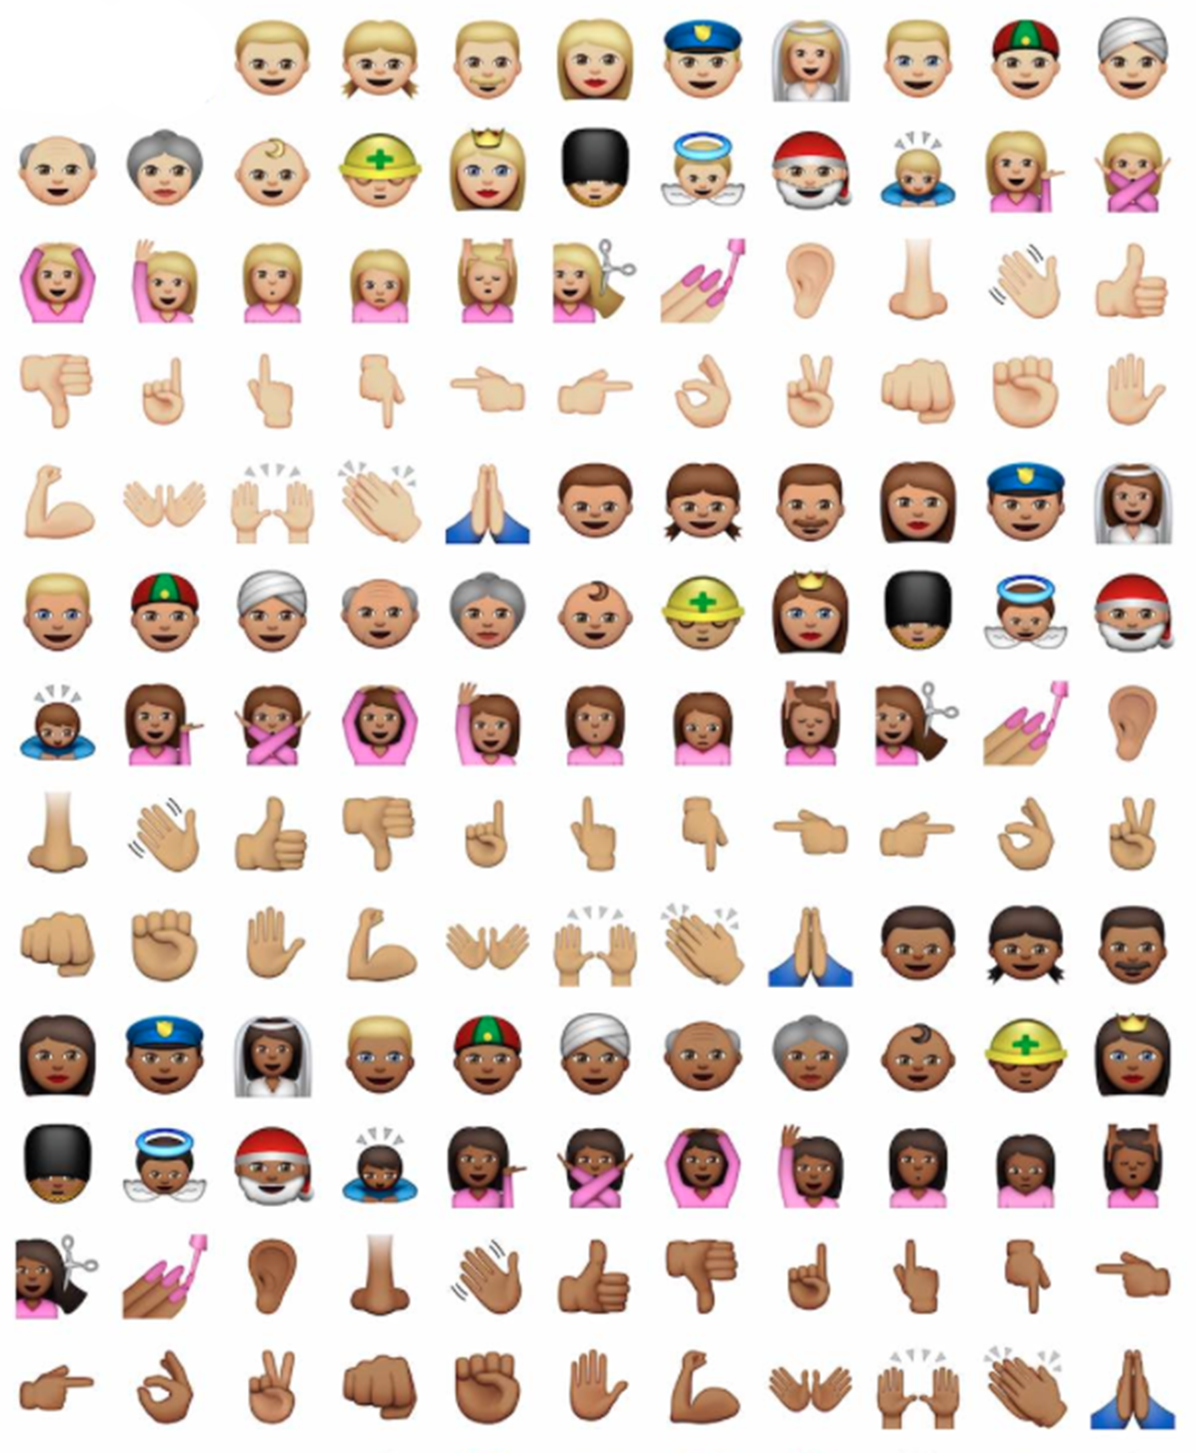 nuove emojis Apple multietniche